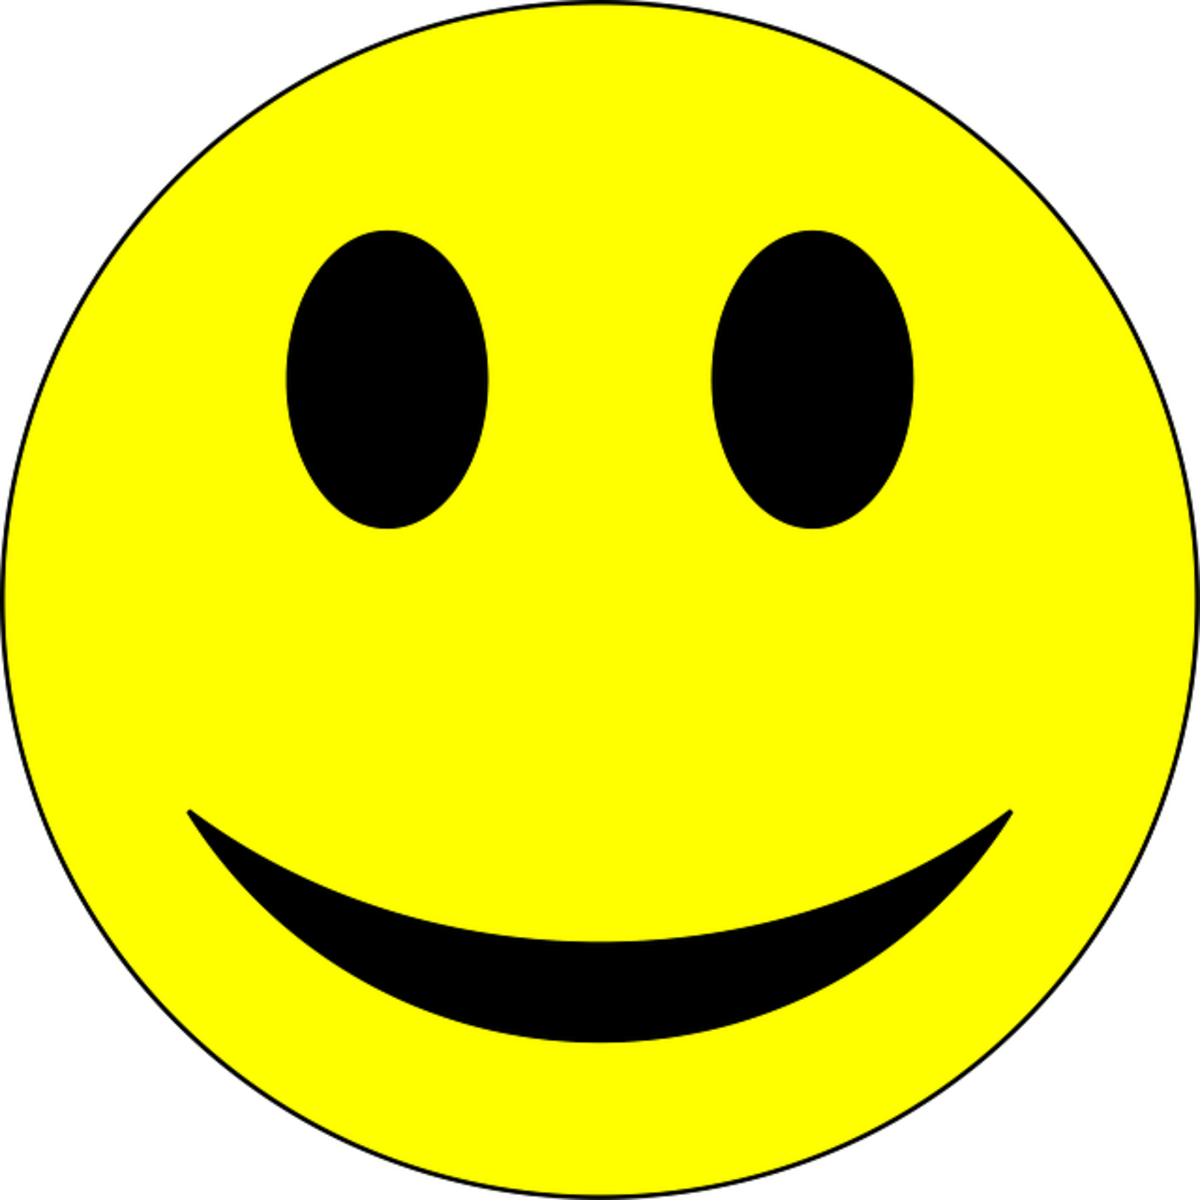 We Must Stop Smiley Face Emoticon Abuse!